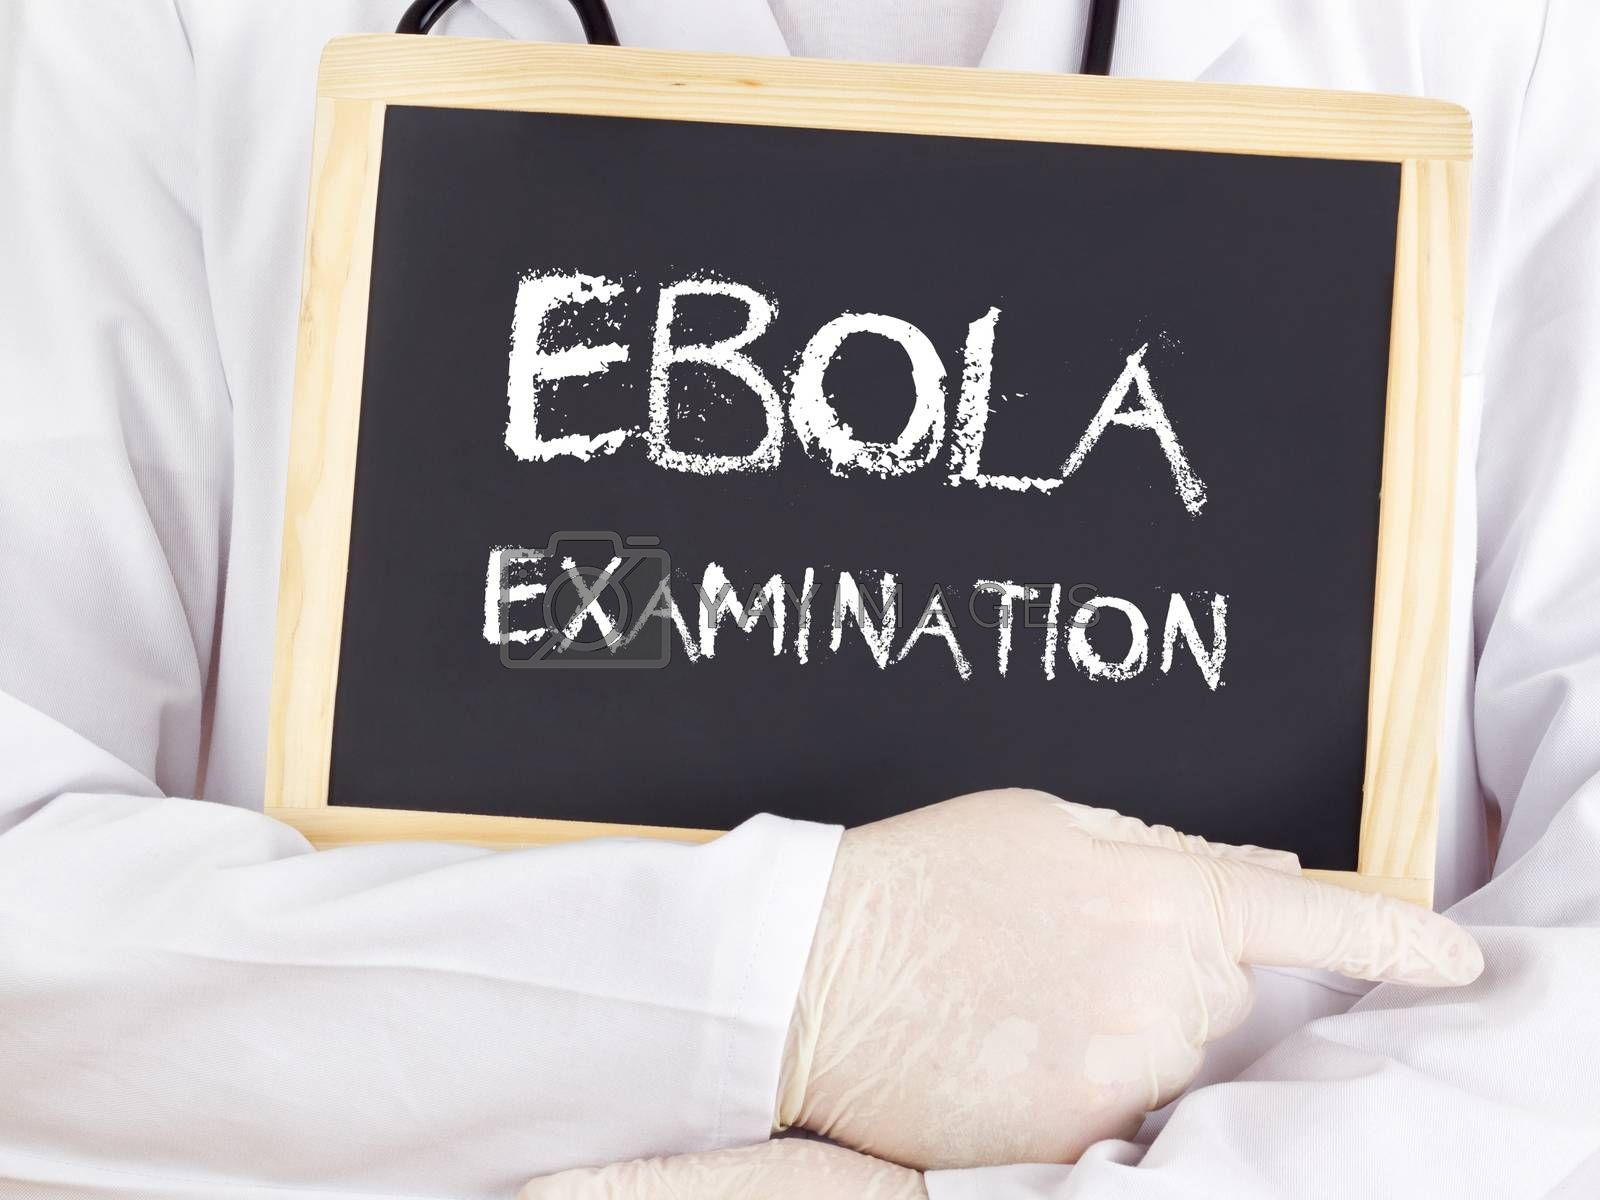 Doctor shows information: Ebola examination